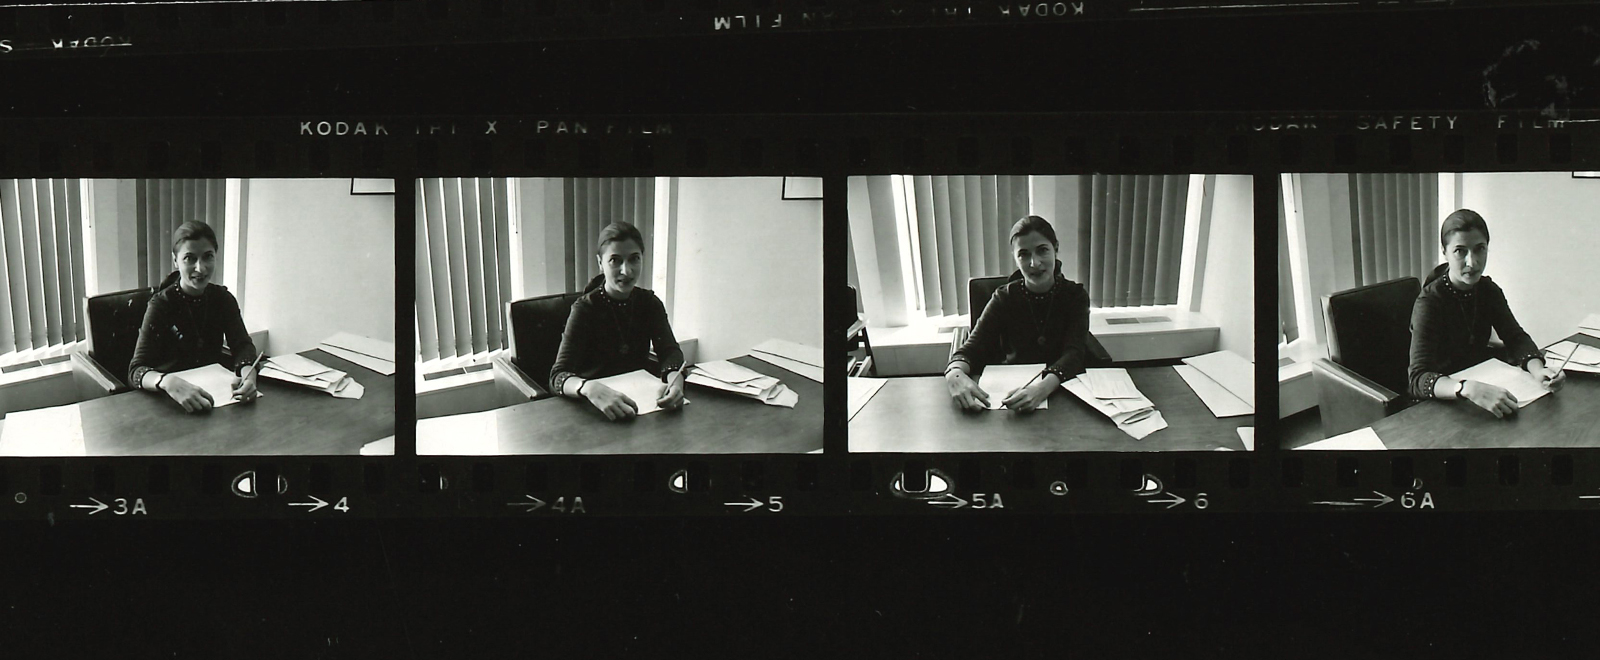 A film strip with pictures of Ruth Bader Ginsburg as a professor in 1972